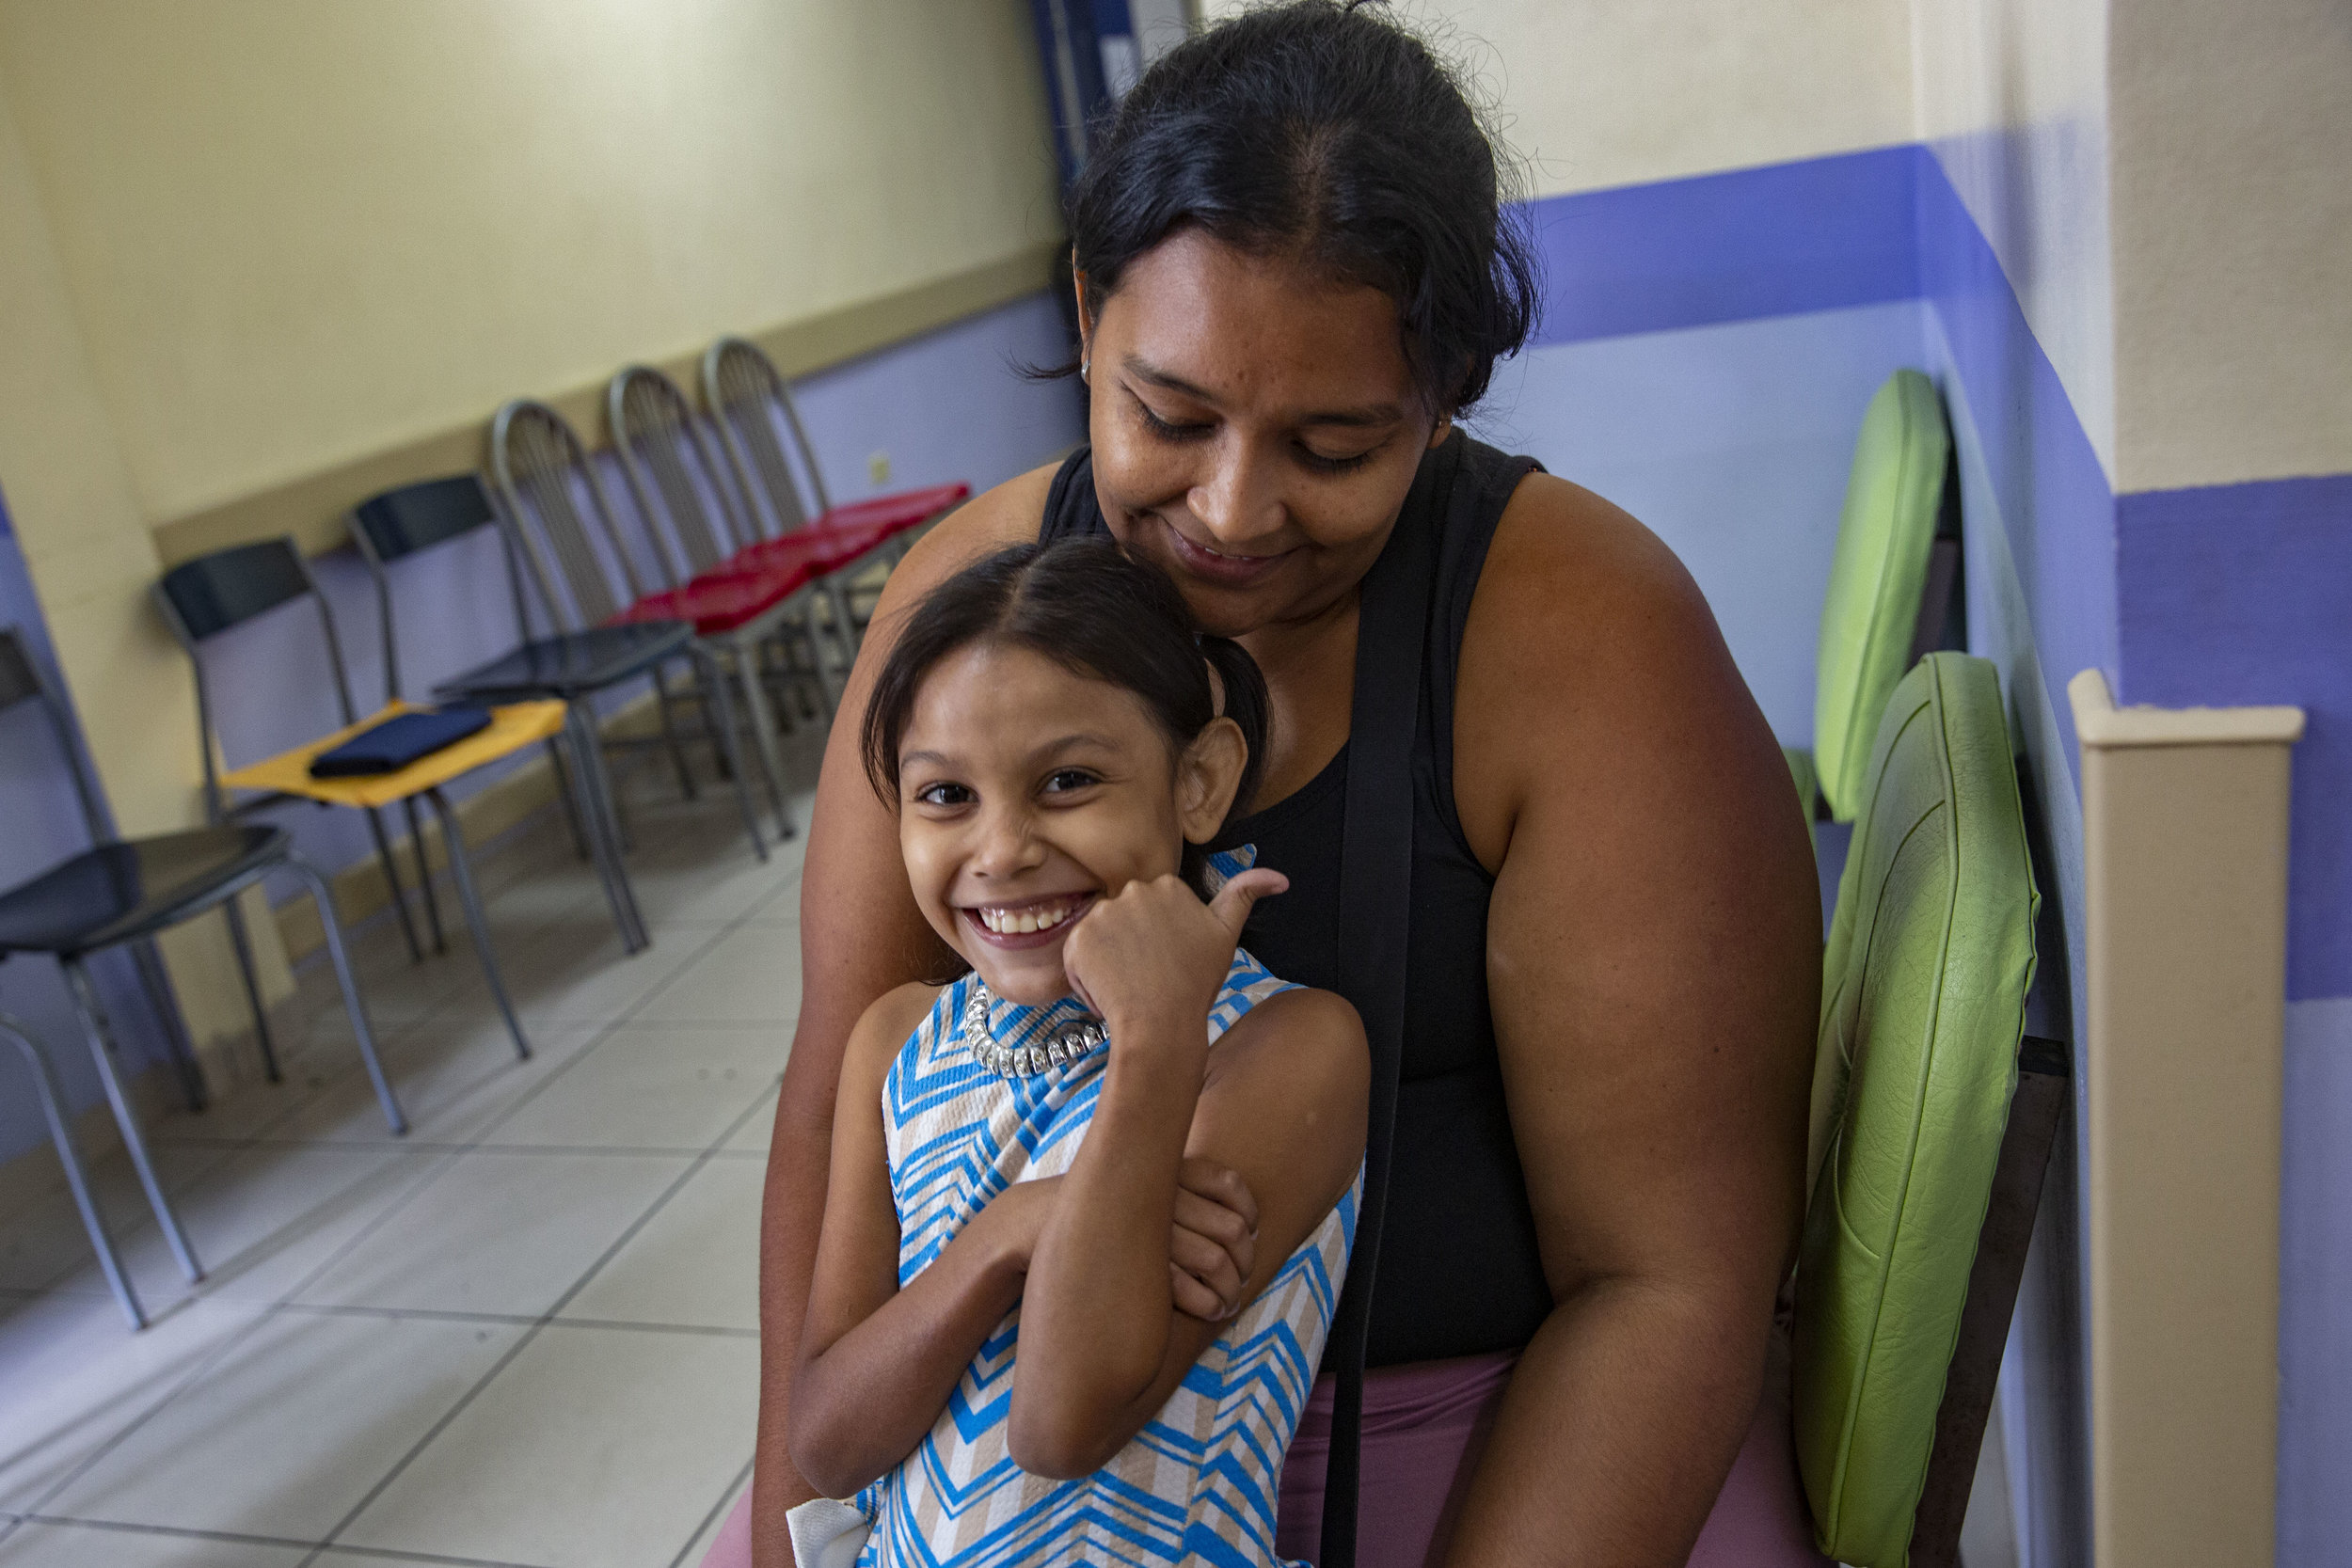 A mother and child waiting to be visited by Dr. Craniotti, head and pedriatic surgeon at the Ruth Paz hospital in San Pedro Sula, Honduras.